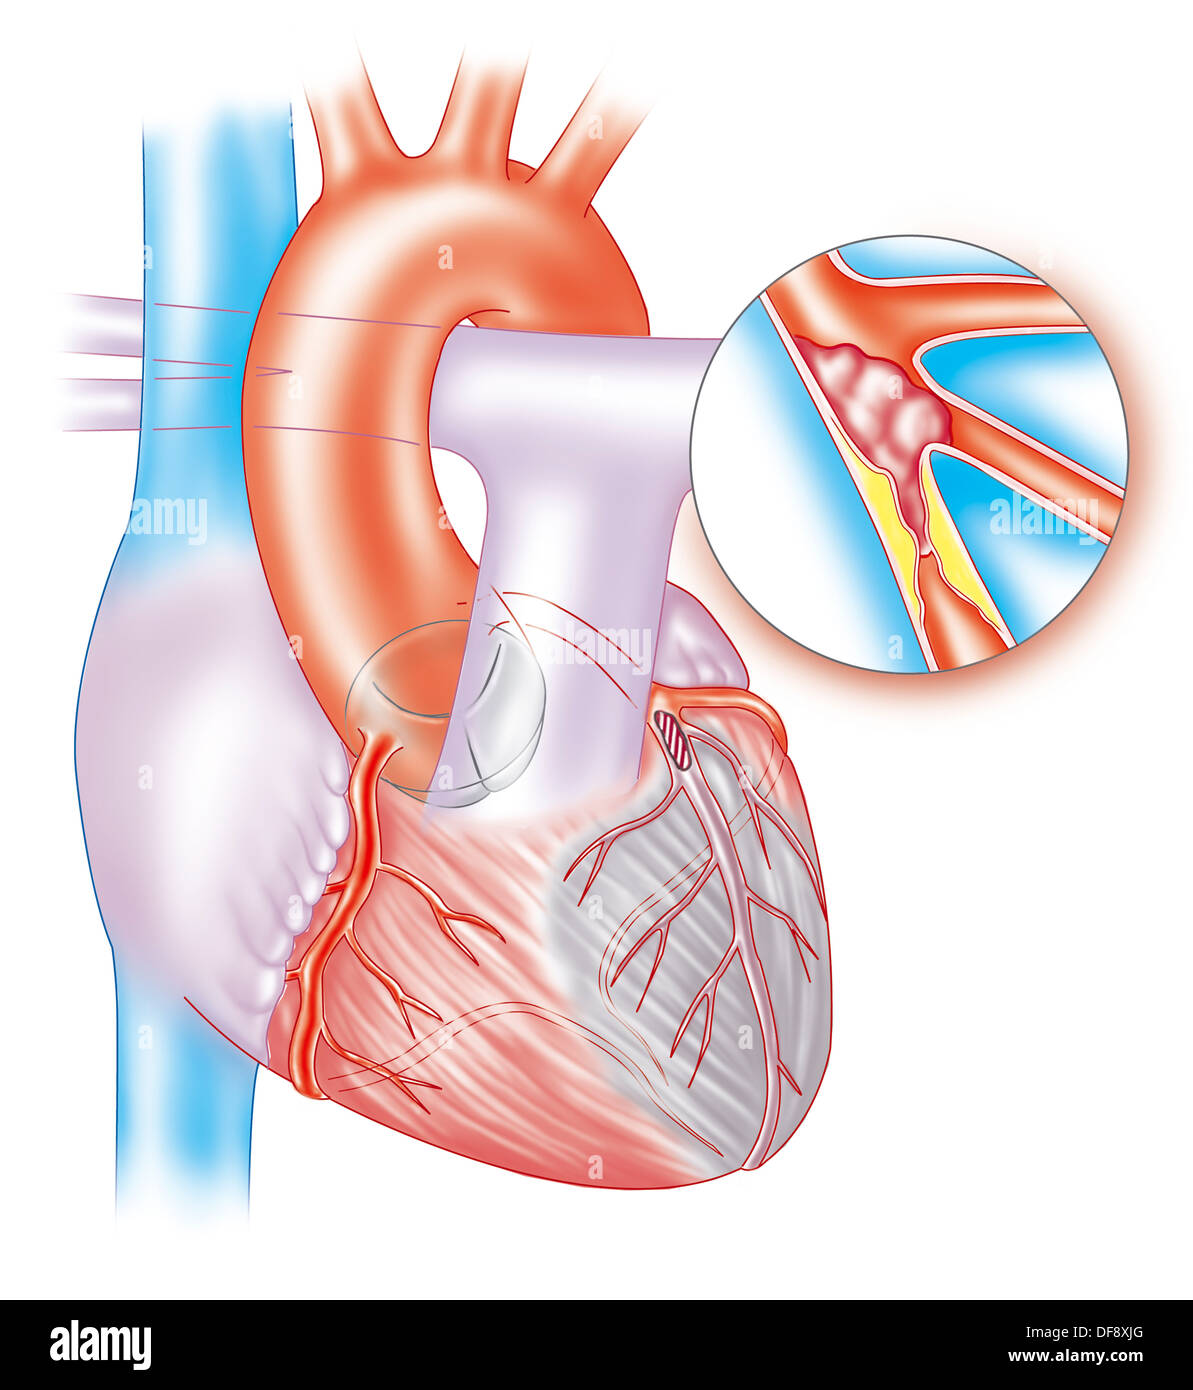 Heart attack drawing stock photo royalty free image 61047464 heart attack drawing ccuart Images